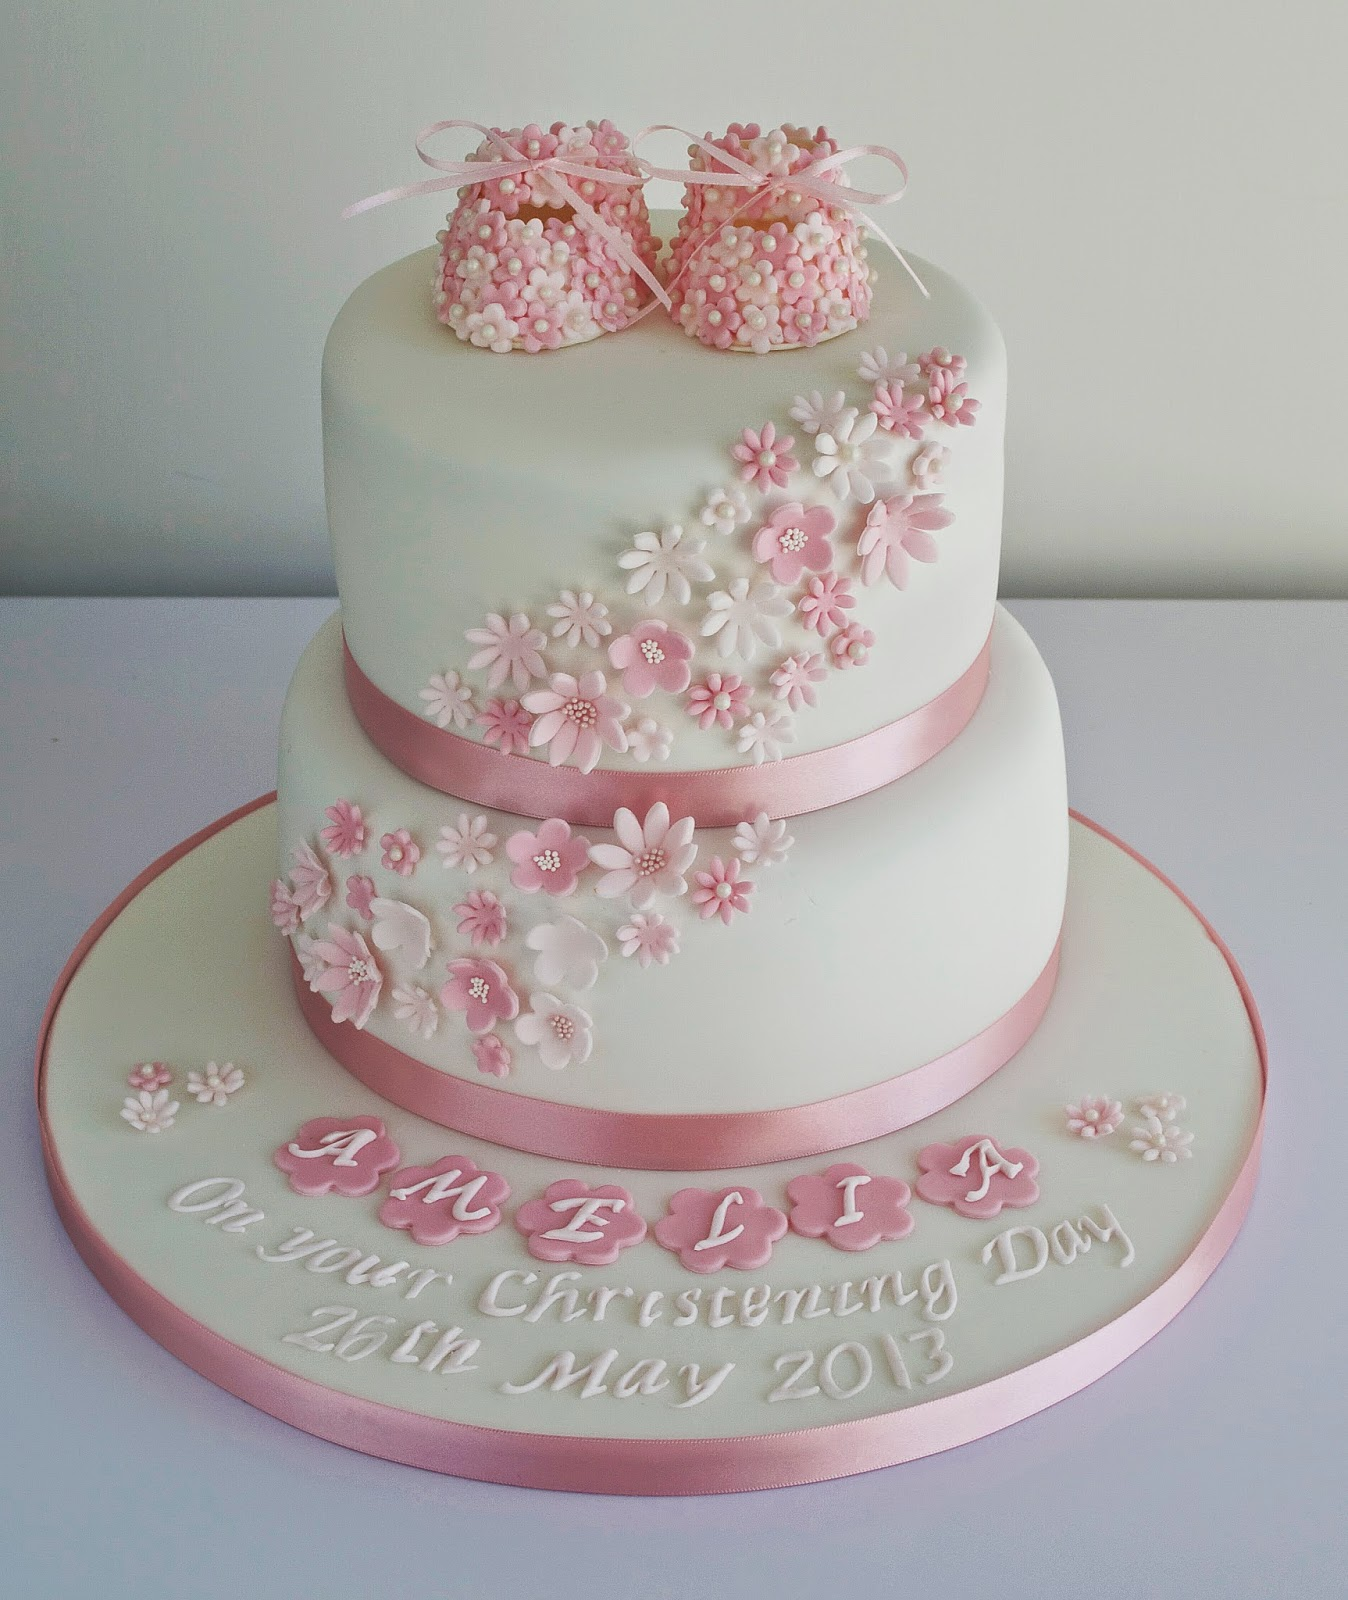 Christening Cake Design For Baby Girl : Sugar Ruffles, Elegant Wedding Cakes. Barrow in Furness ...